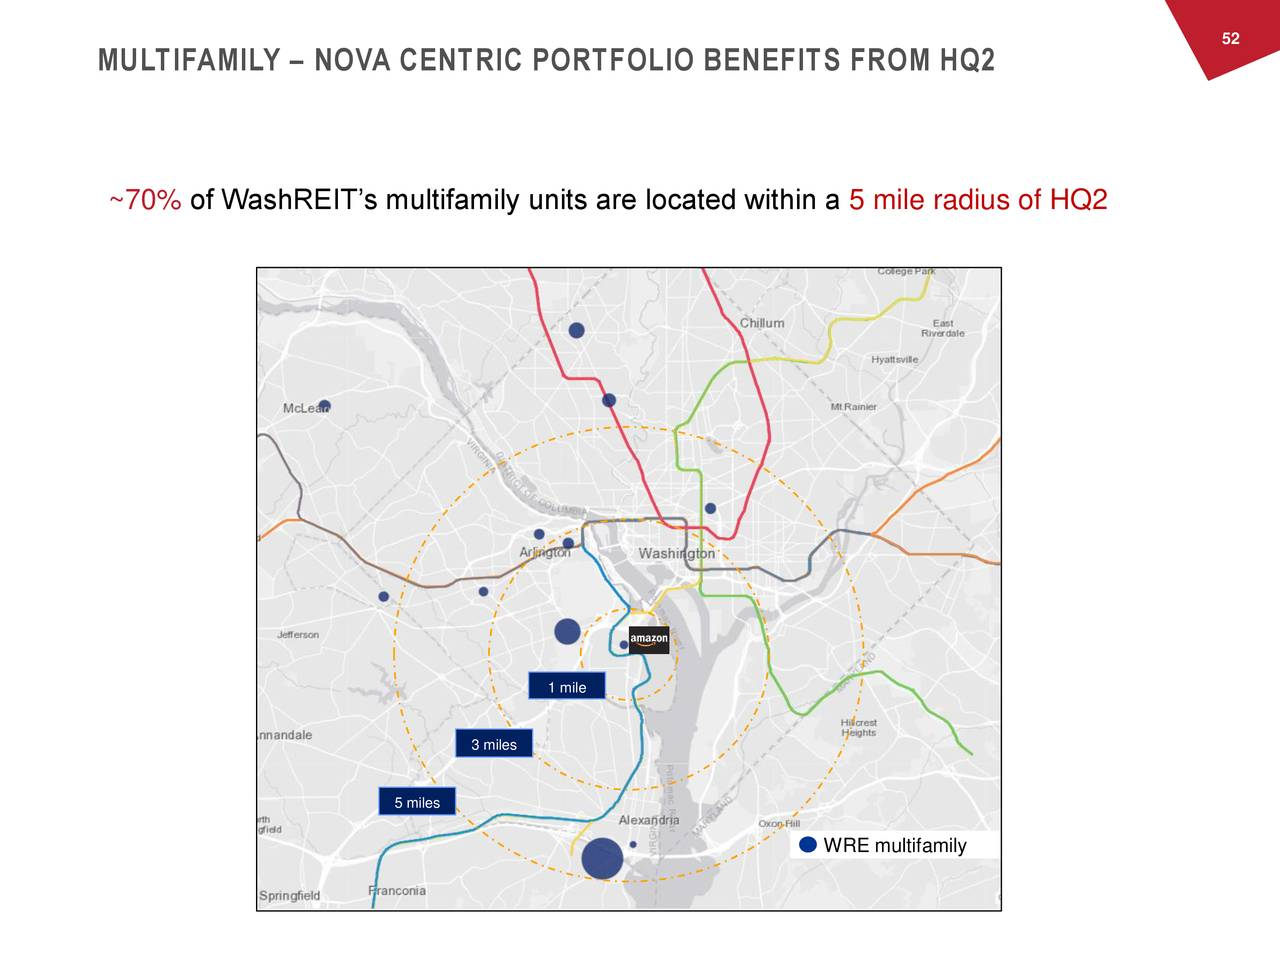 MULTIFAMILY – NOVA CENTRIC PORTFOLIO BENEFITS FROM HQ2 ~70% of WashREIT's multifamily units are located within a 5 mile radius of HQ2 1 mile 3 miles 5 miles WRE multifamily